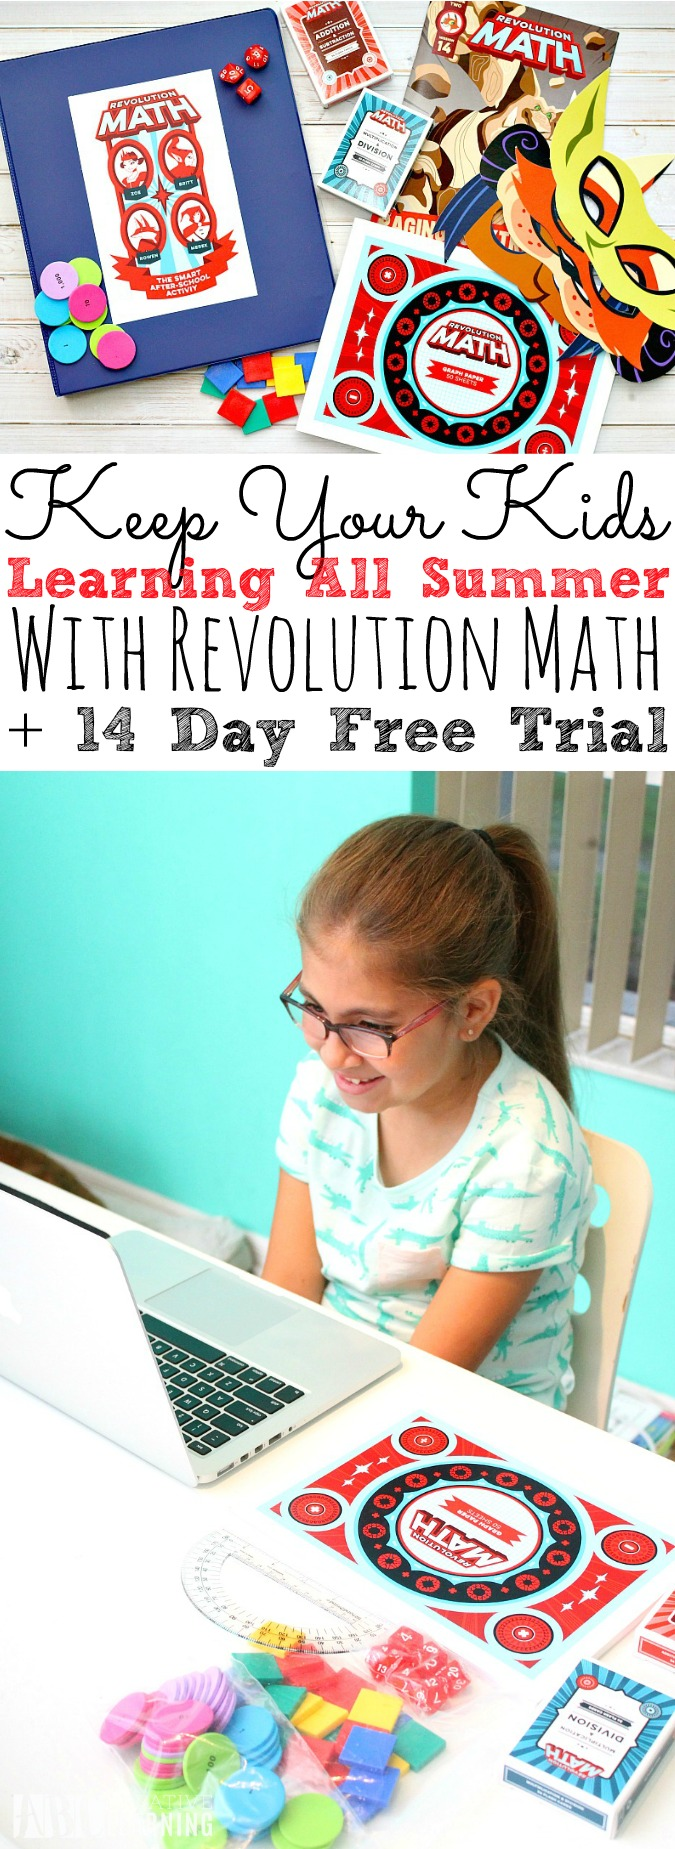 Keep Your Kids Learning All Summer With Revolution Math + 14 Day ...